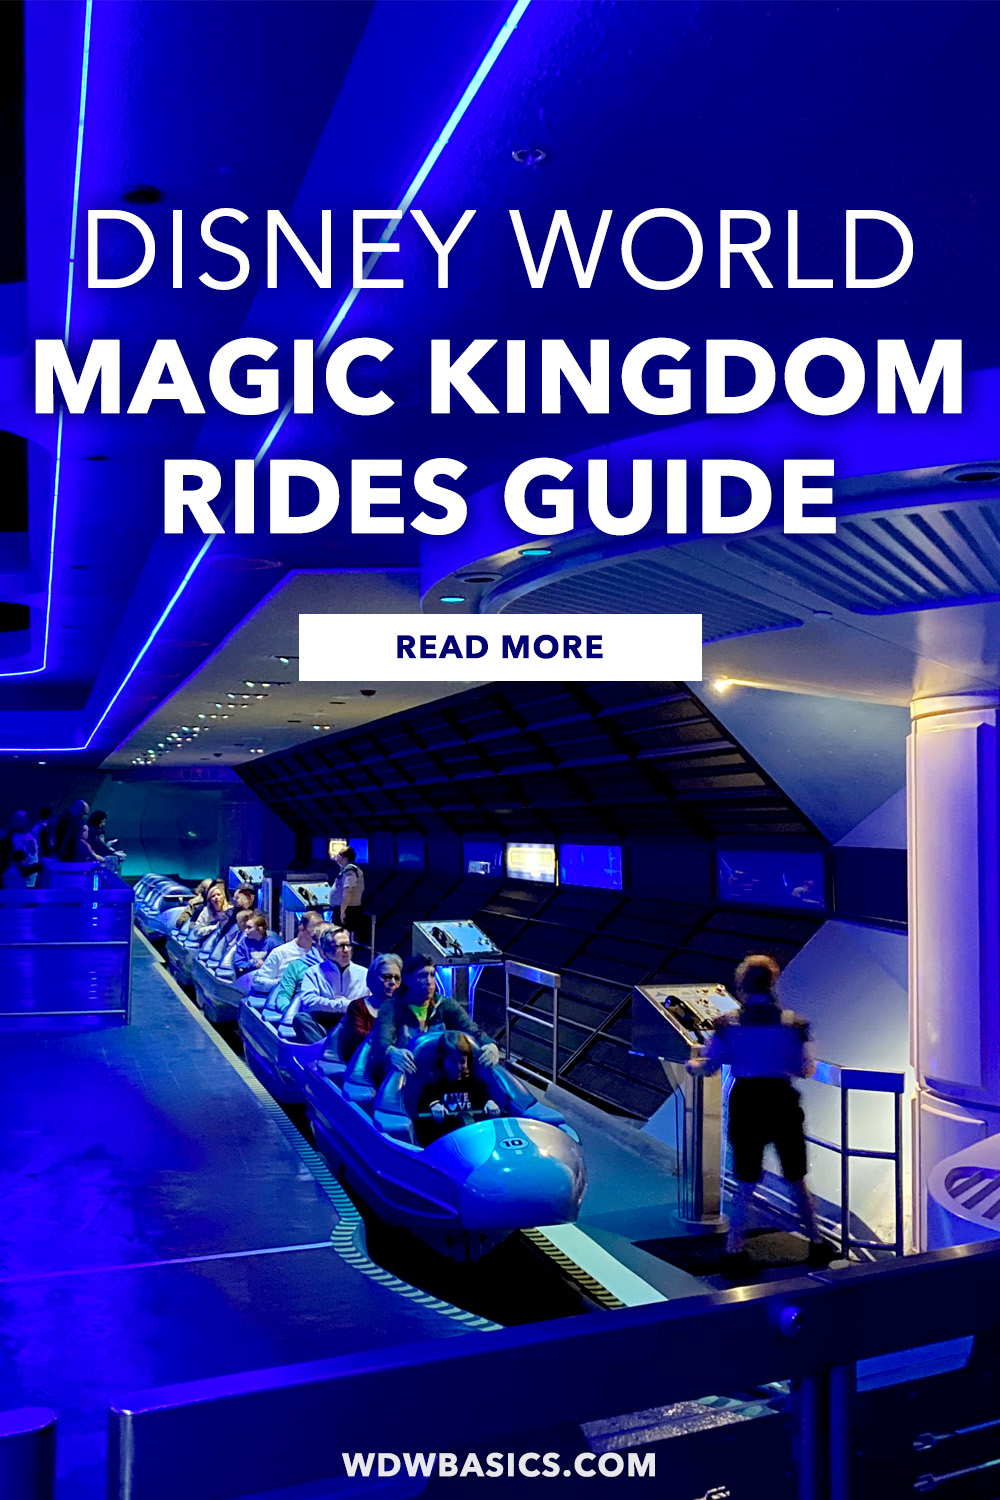 Magic Kingdom rides guide